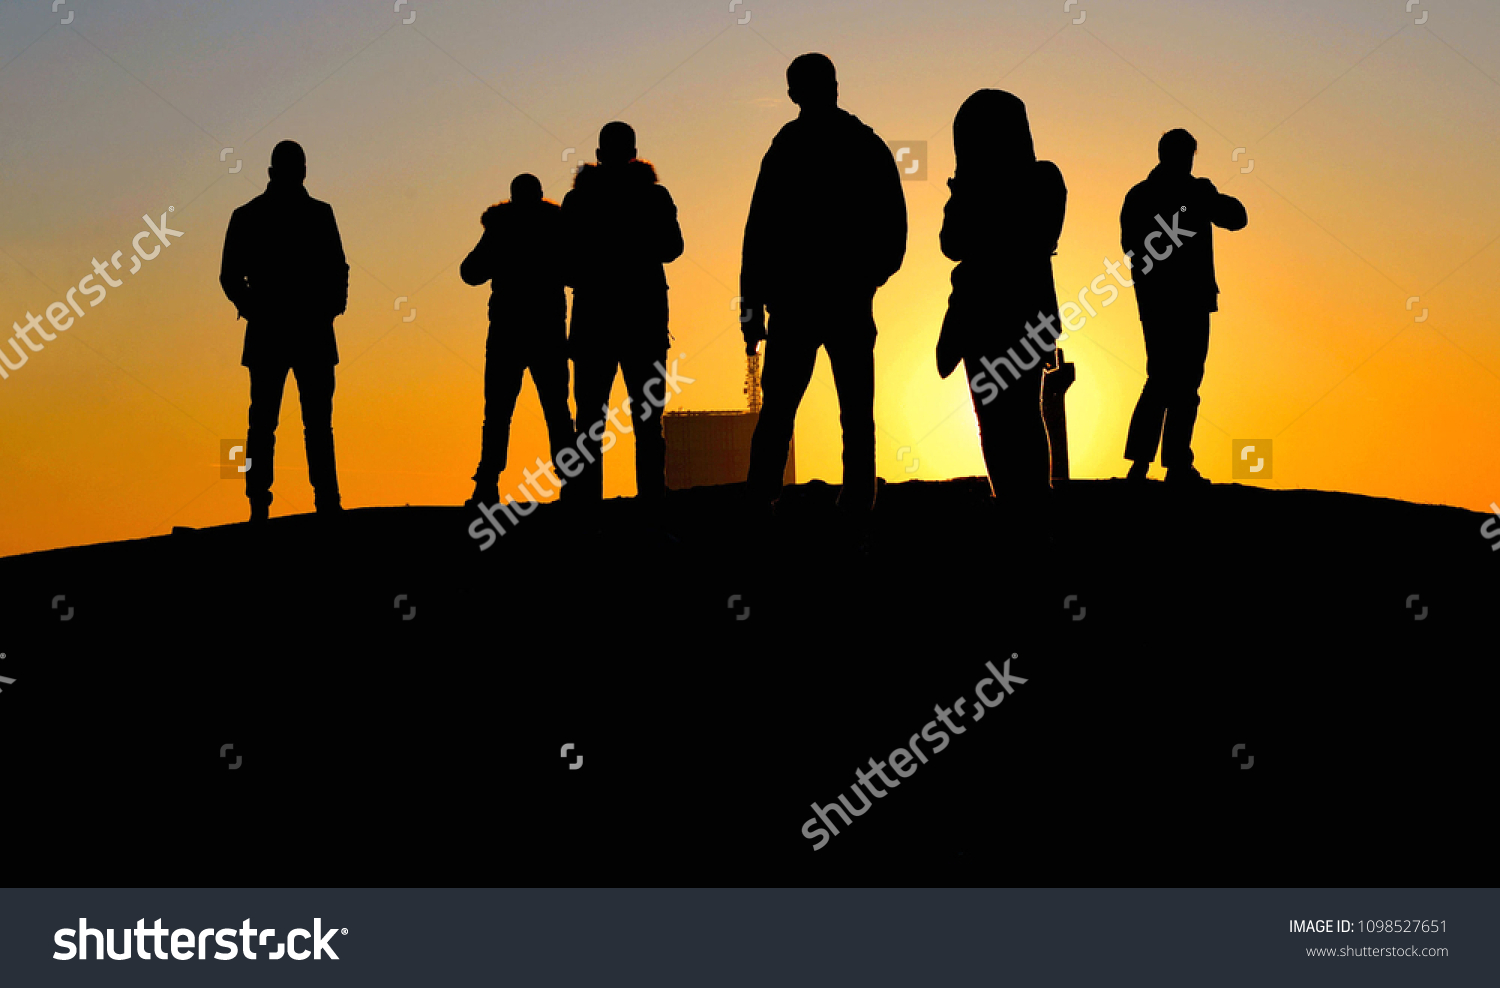 silhouettes of people on the hill with colorful warm orange sunset